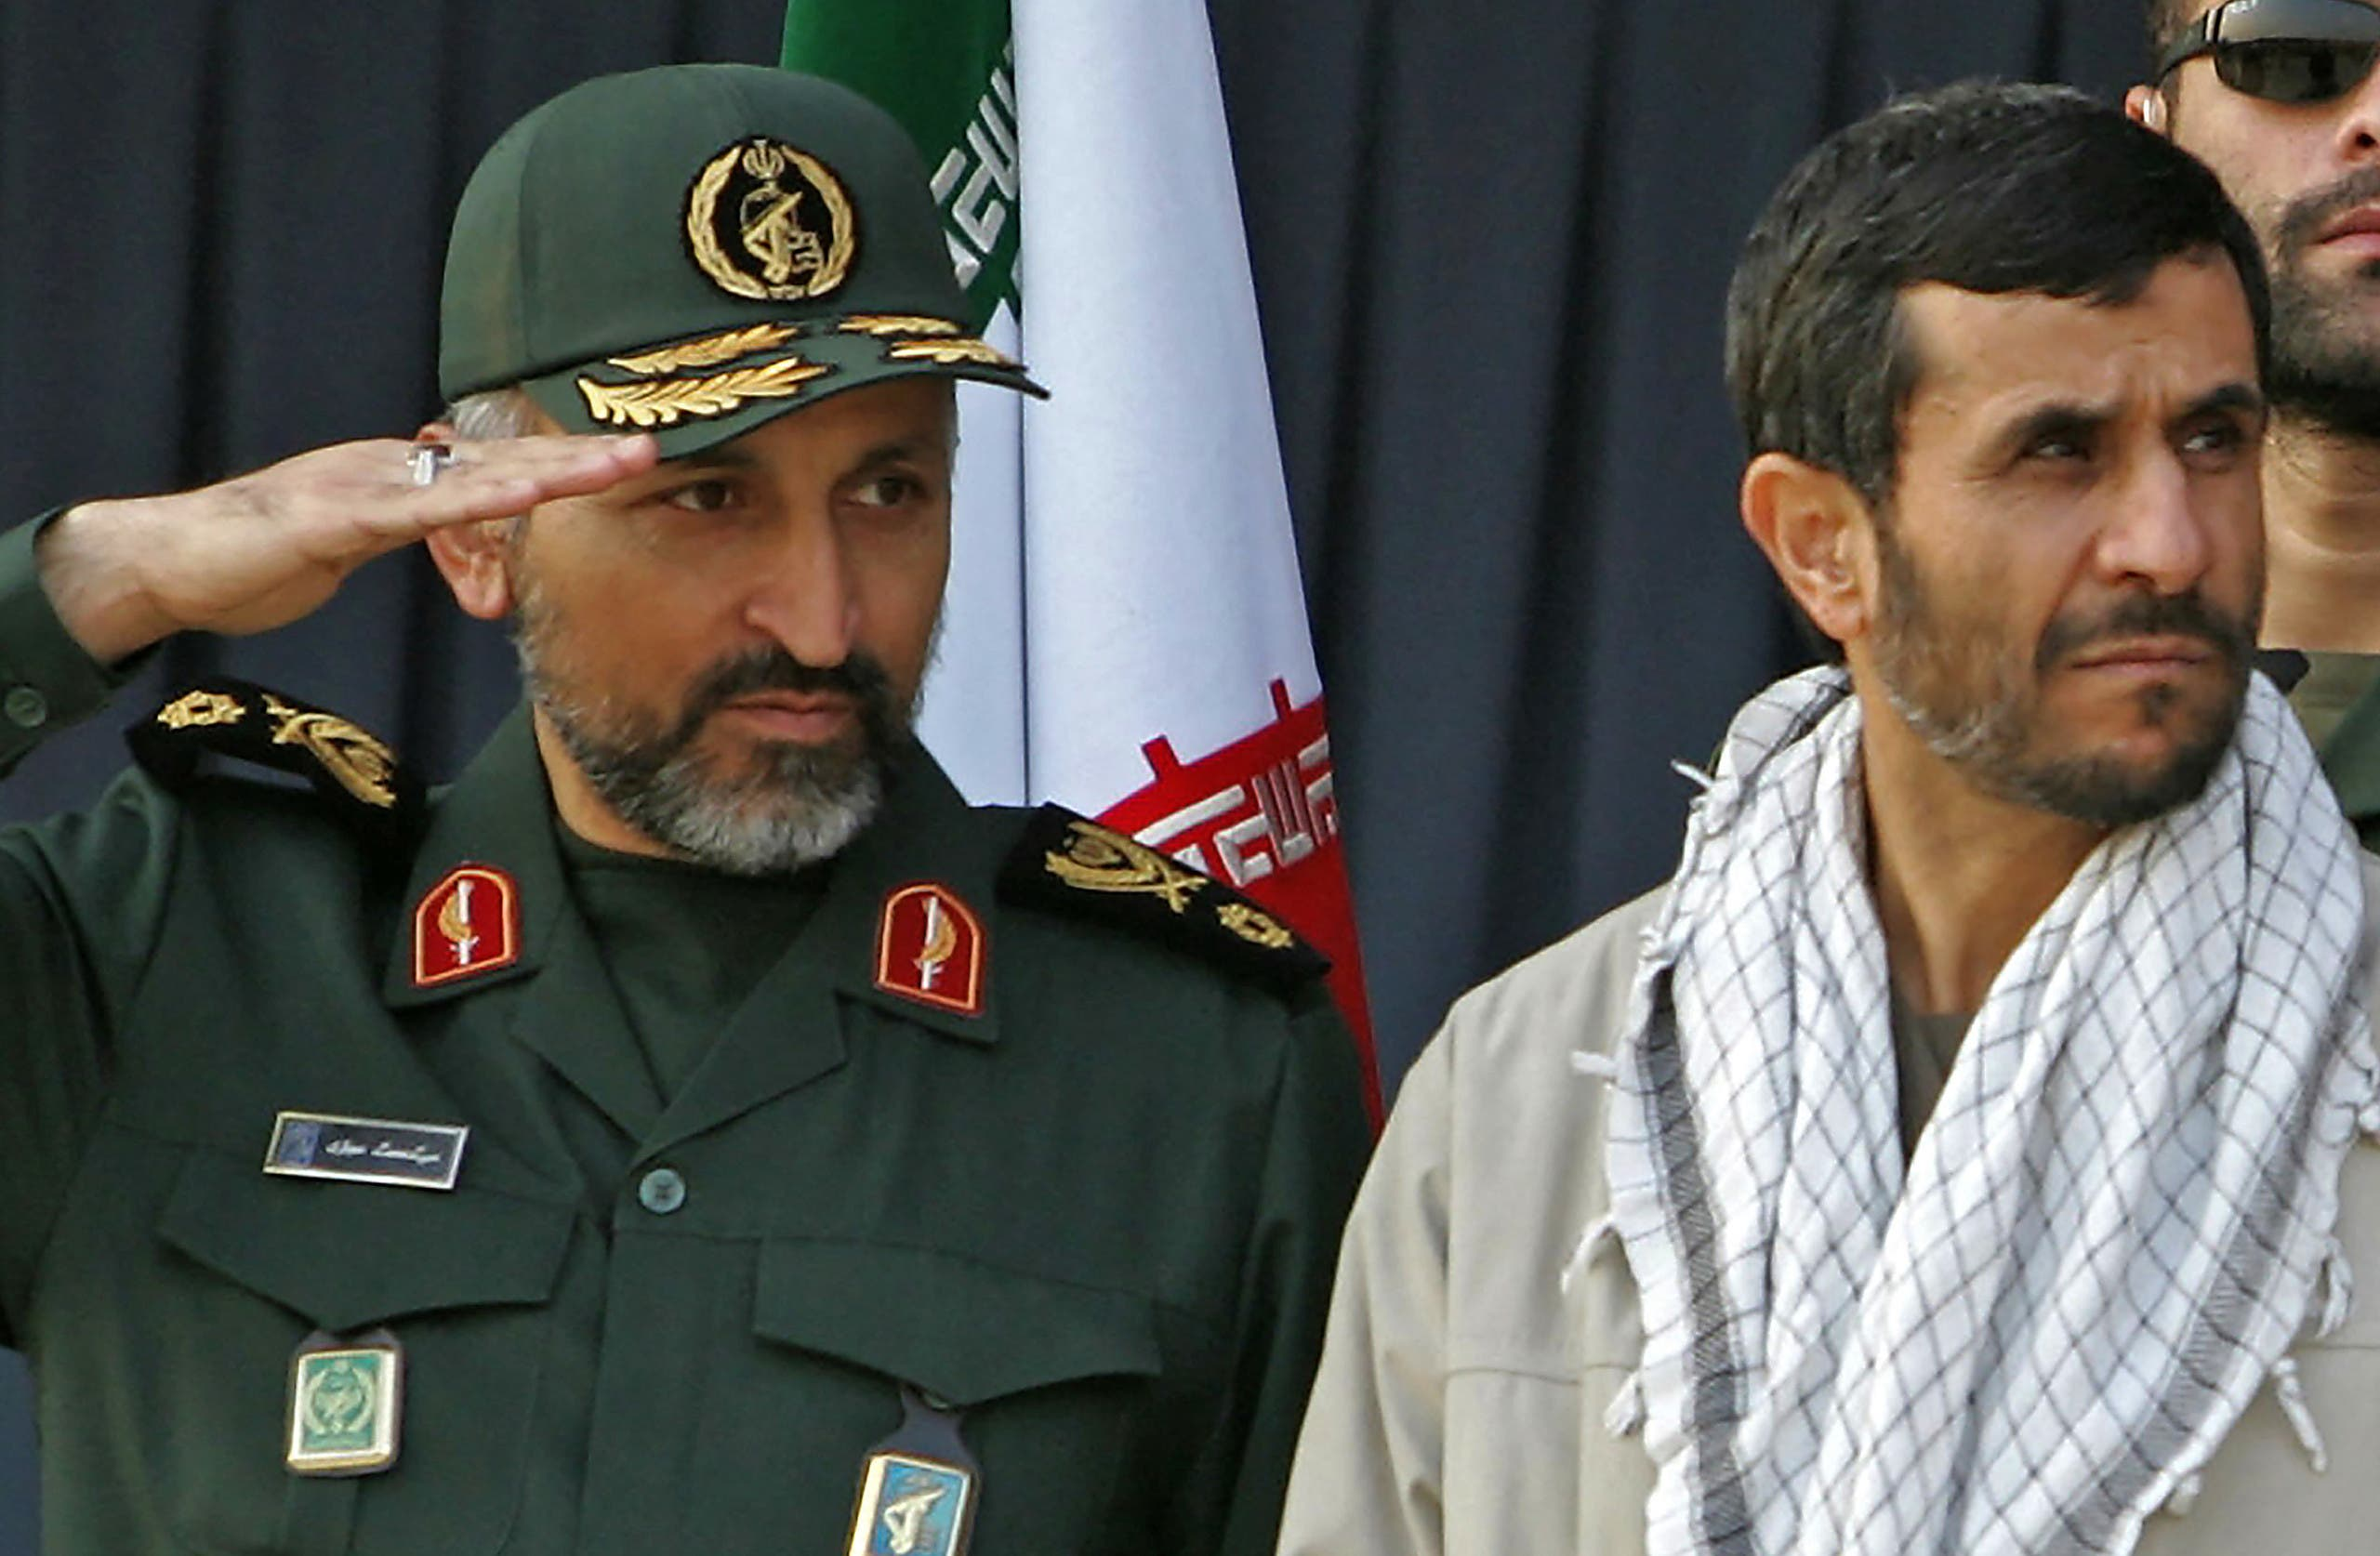 In this file photo taken on November 26, 2006, former Iranian President Mahmoud Ahmadinejad (R) and Mohammad Hejazi attend a parade held by the Islamic volunteer Basij militia at the mausoleum of the late revolutionary founder Ayatollah Khomeini, just outside Tehran. (AFP)